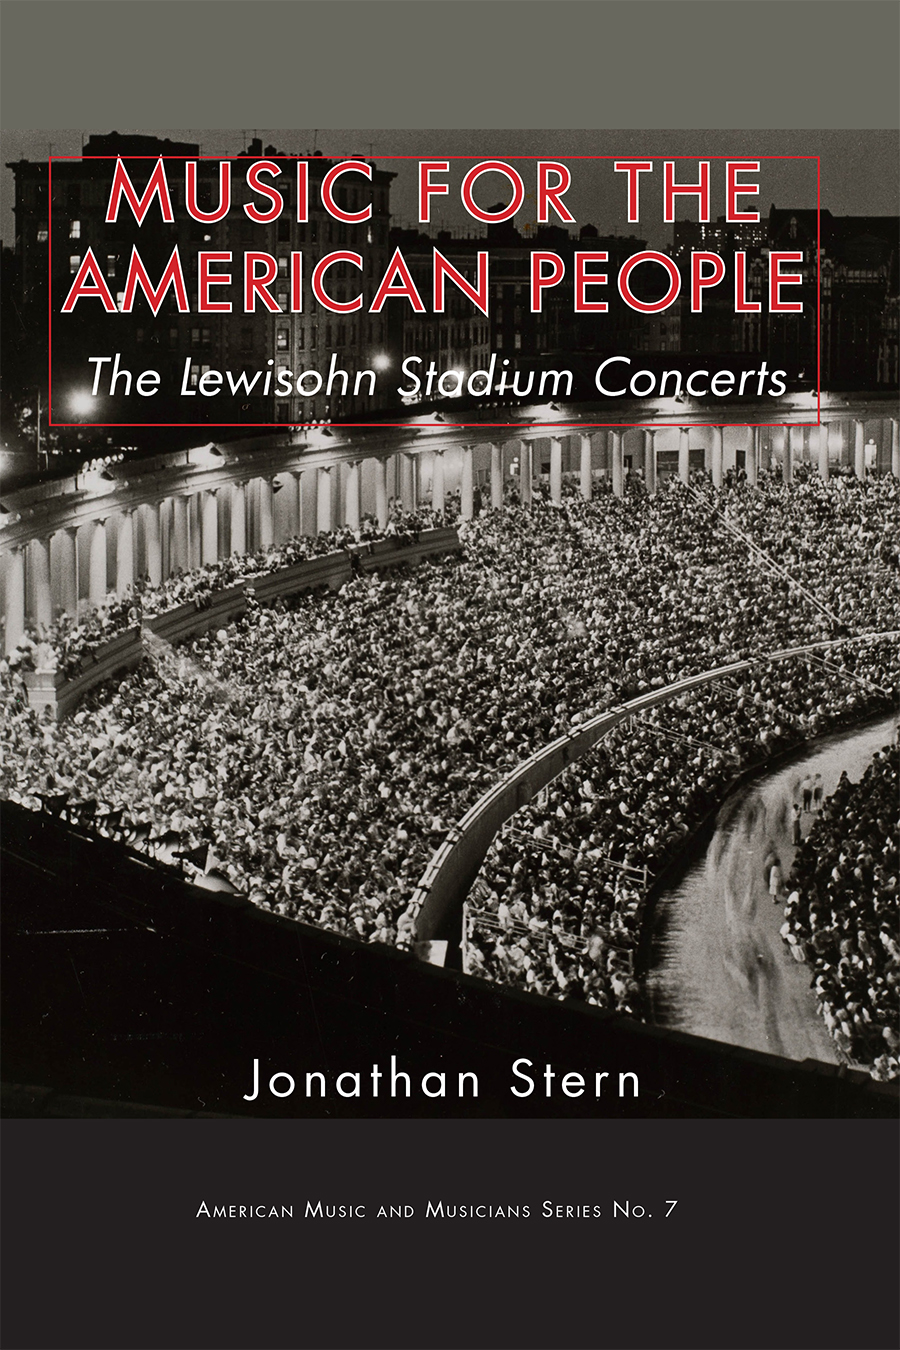 Music for the American People